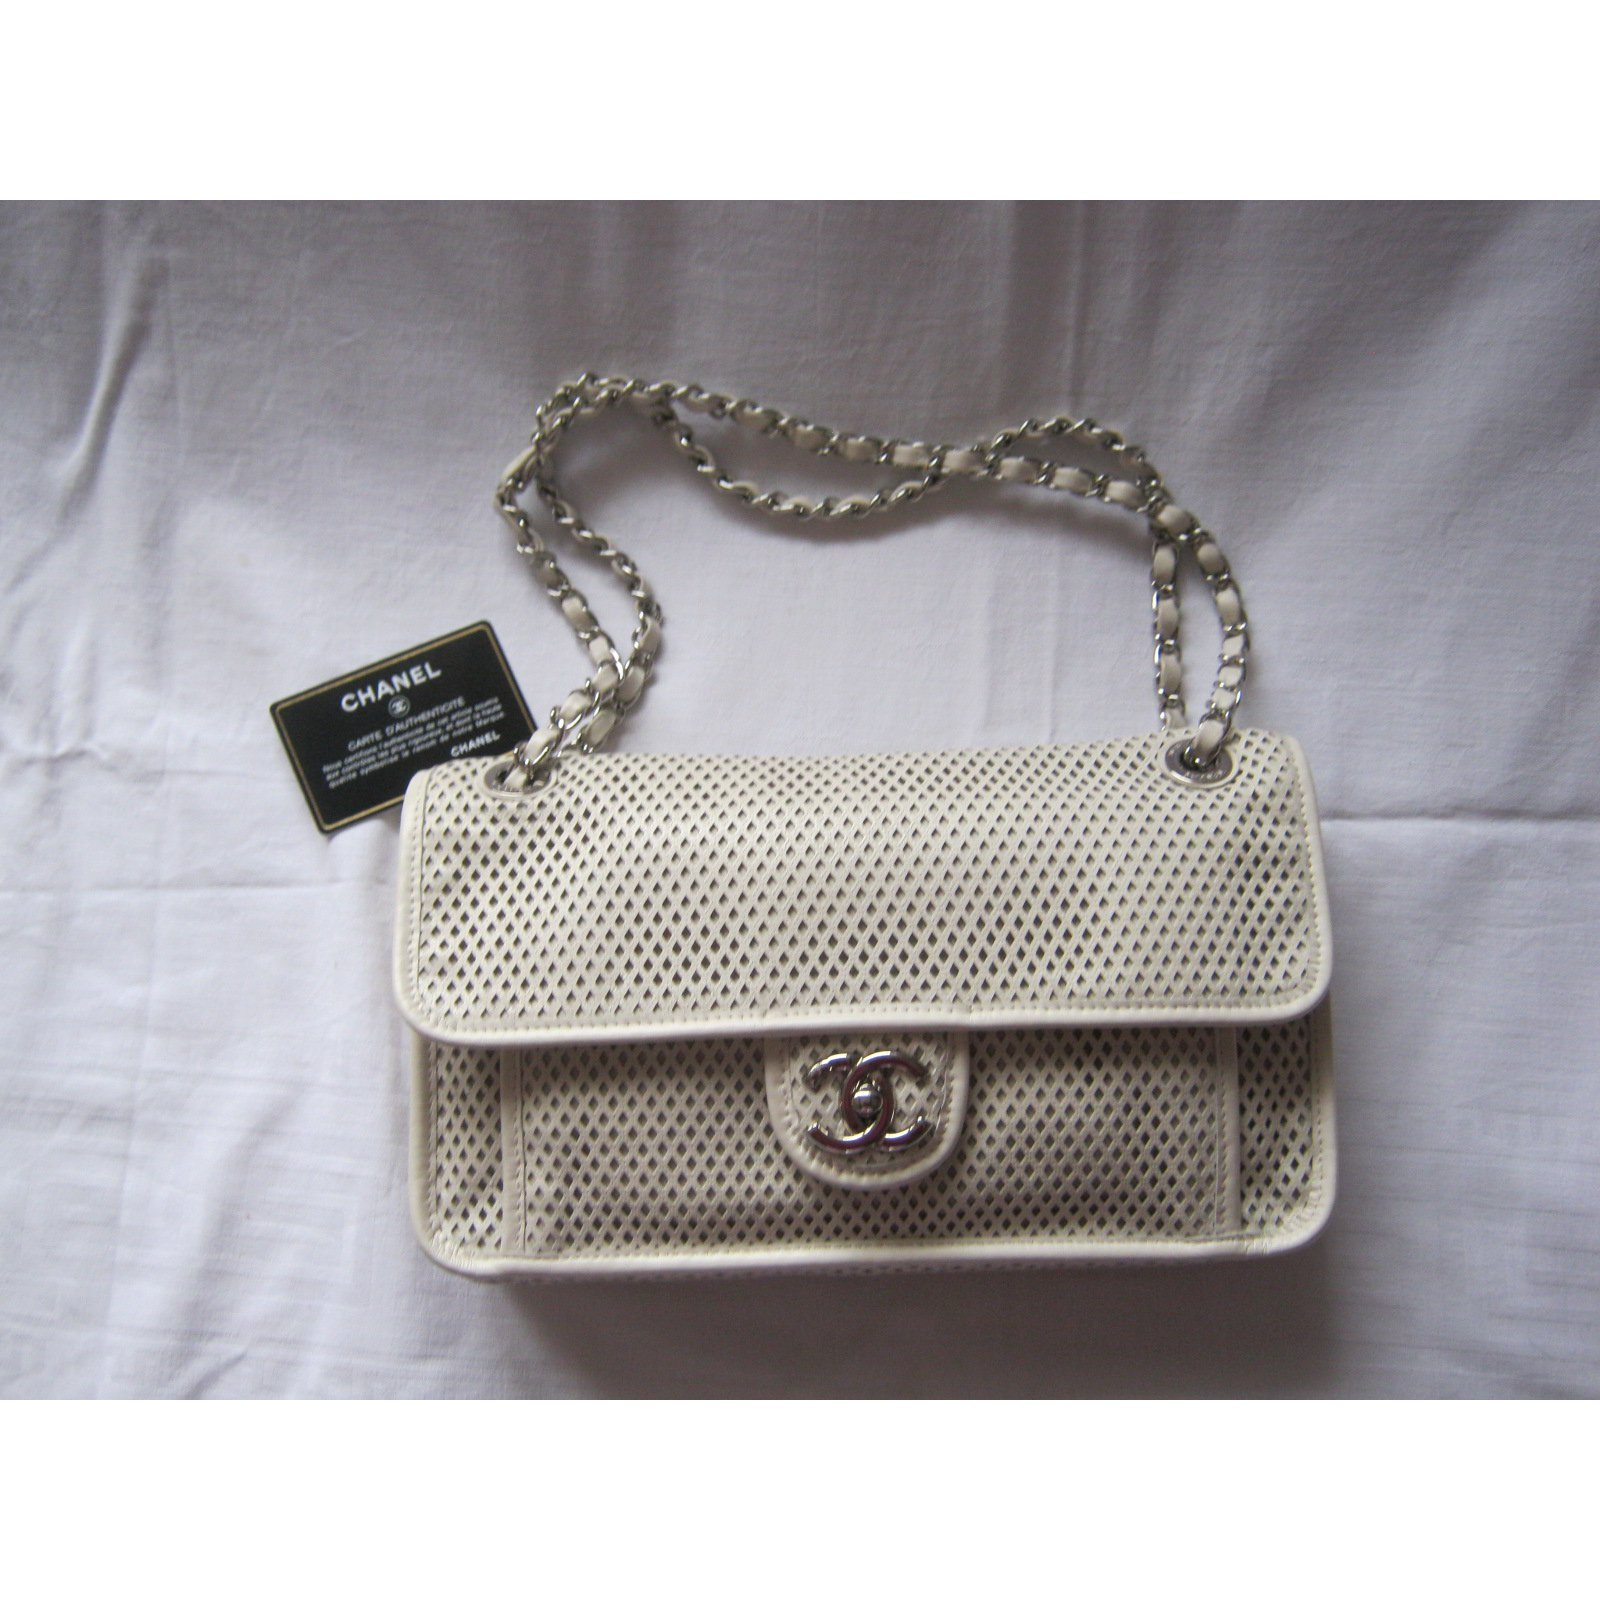 6b67efacdf47 Chanel French riviera Flap Bag Handbags Leather Cream ref.35431 - Joli  Closet